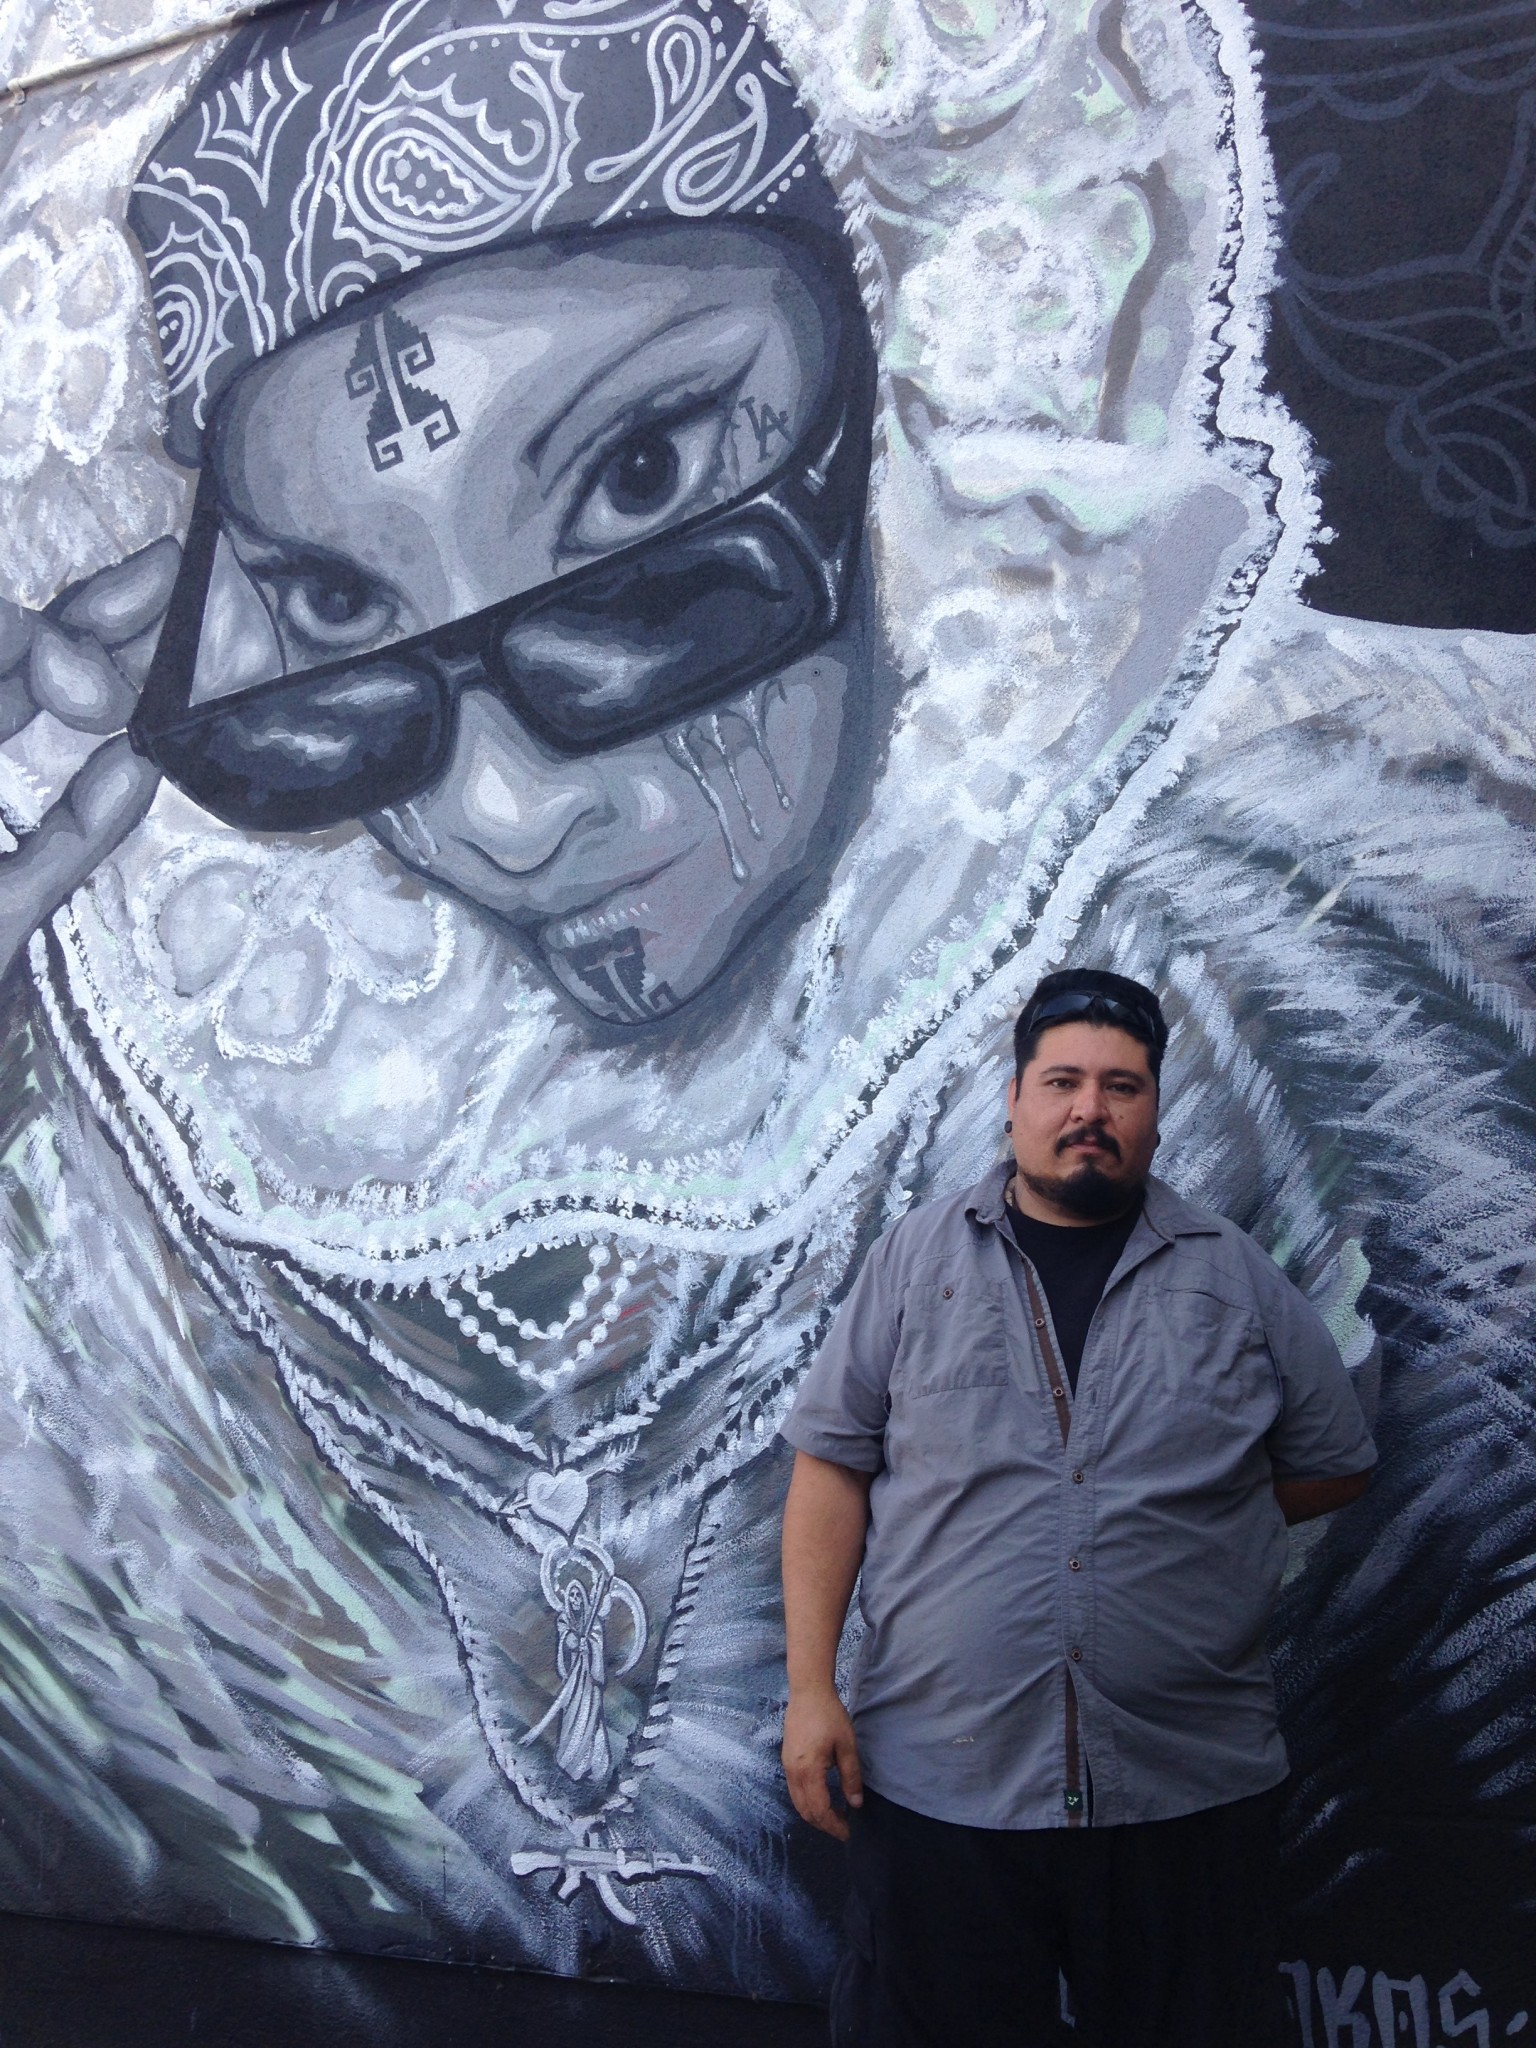 Raul Gonzalez, an artist and Boyle Heights native who was priced out of his nearby studio after his rent tripled, poses in front of a mural outside of Self Help Graphics & Art. Photo by Avishay Artsy.